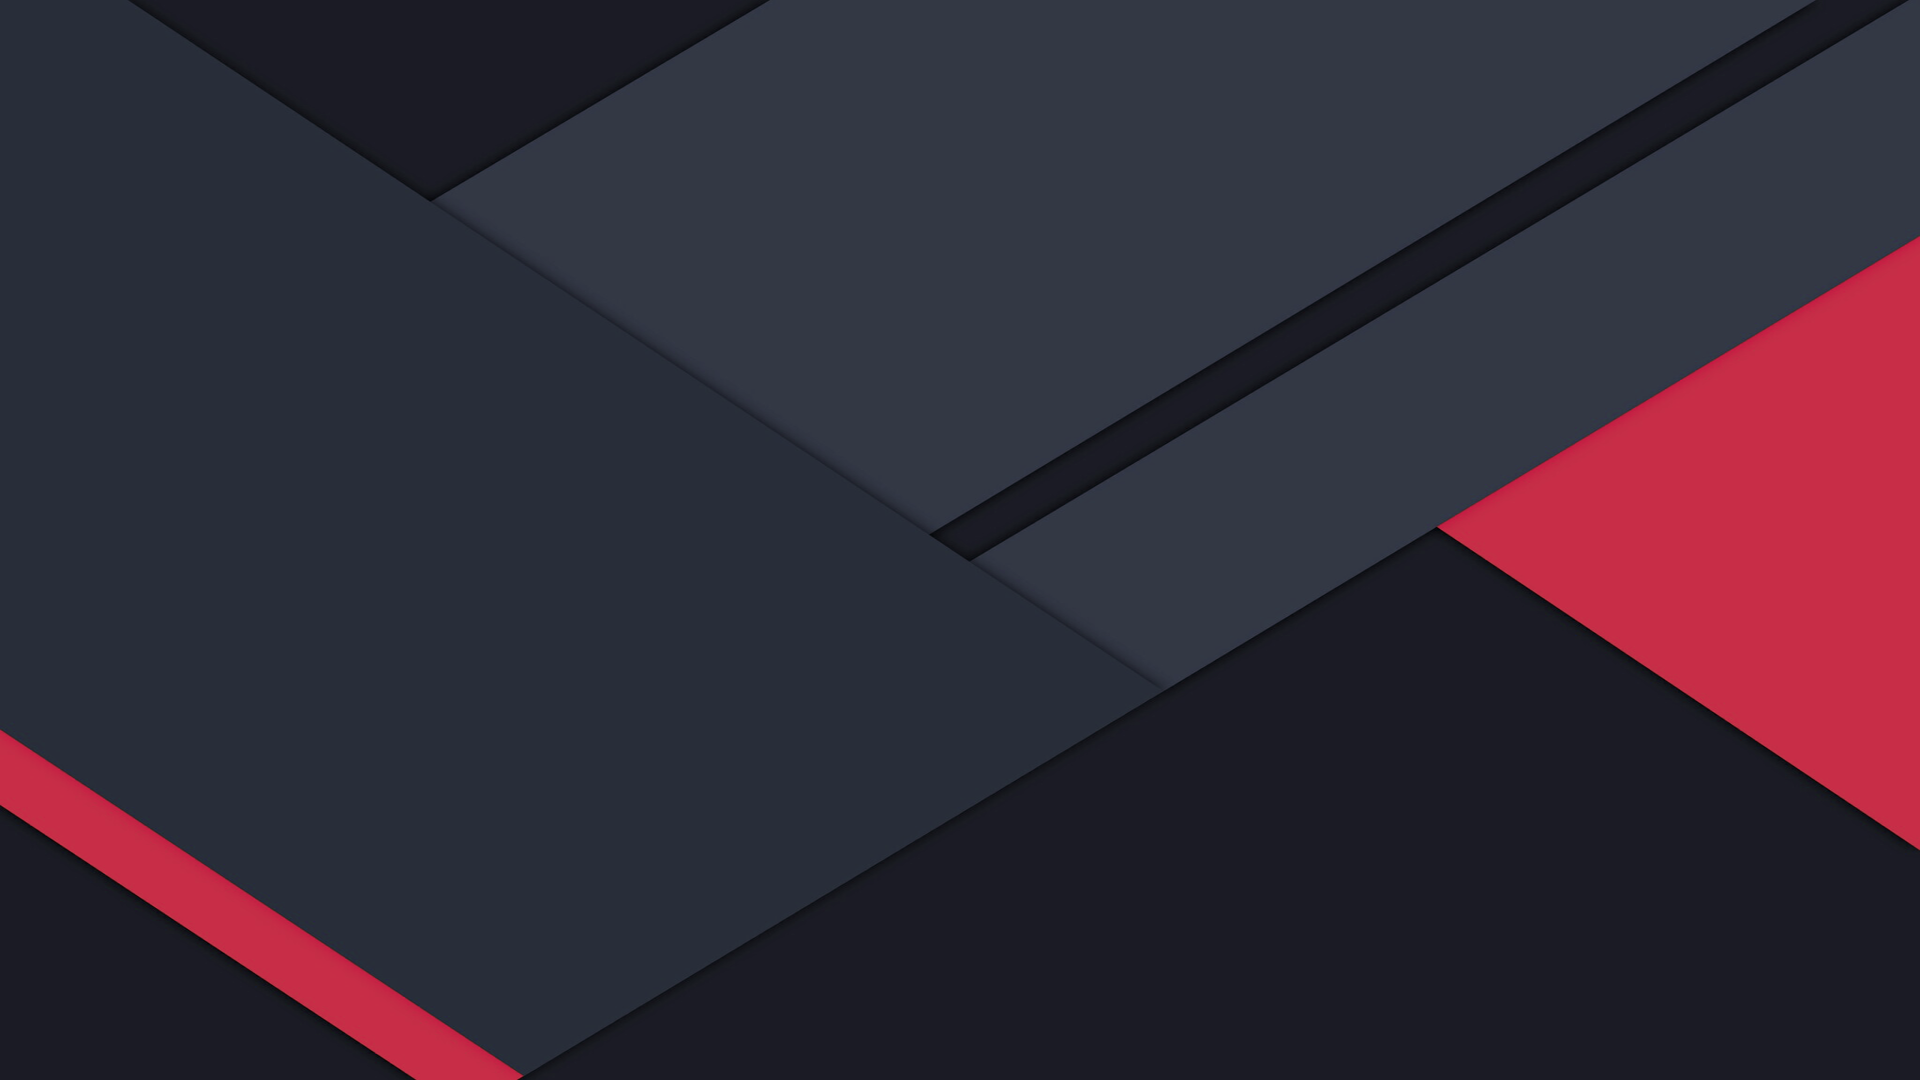 material_design_wallpaper_red_034_by_charlie_henson-daa22ts